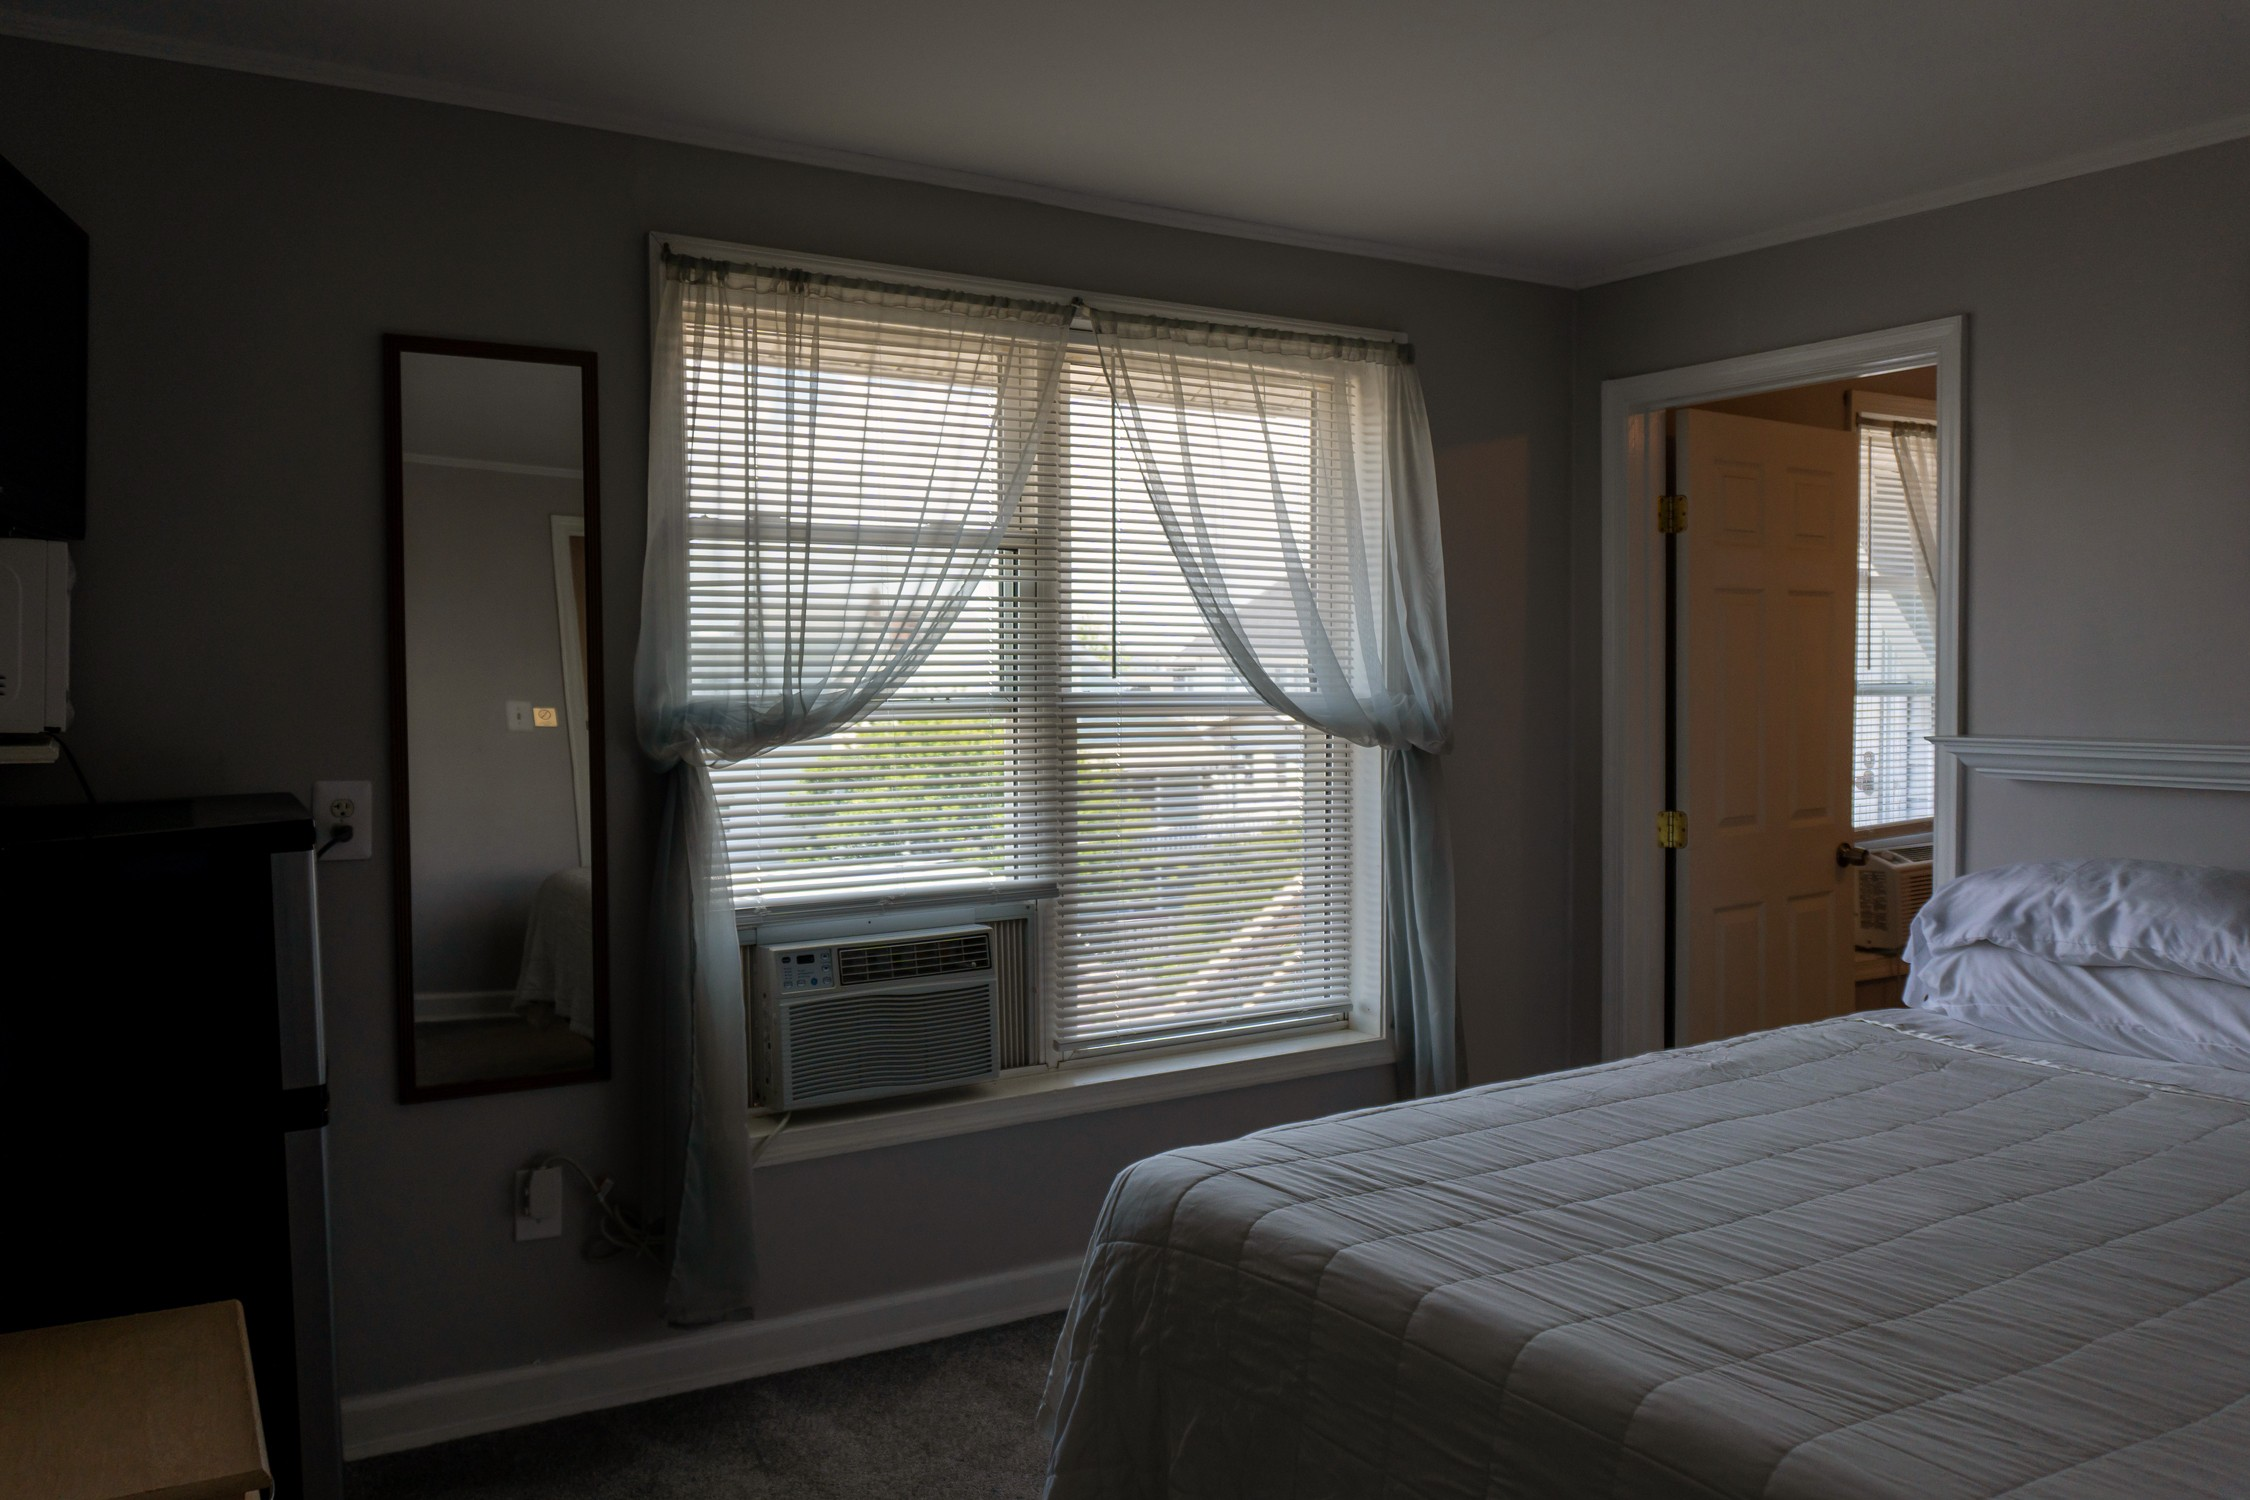 bedroom with queen bed, dresser, and window with a/c unit